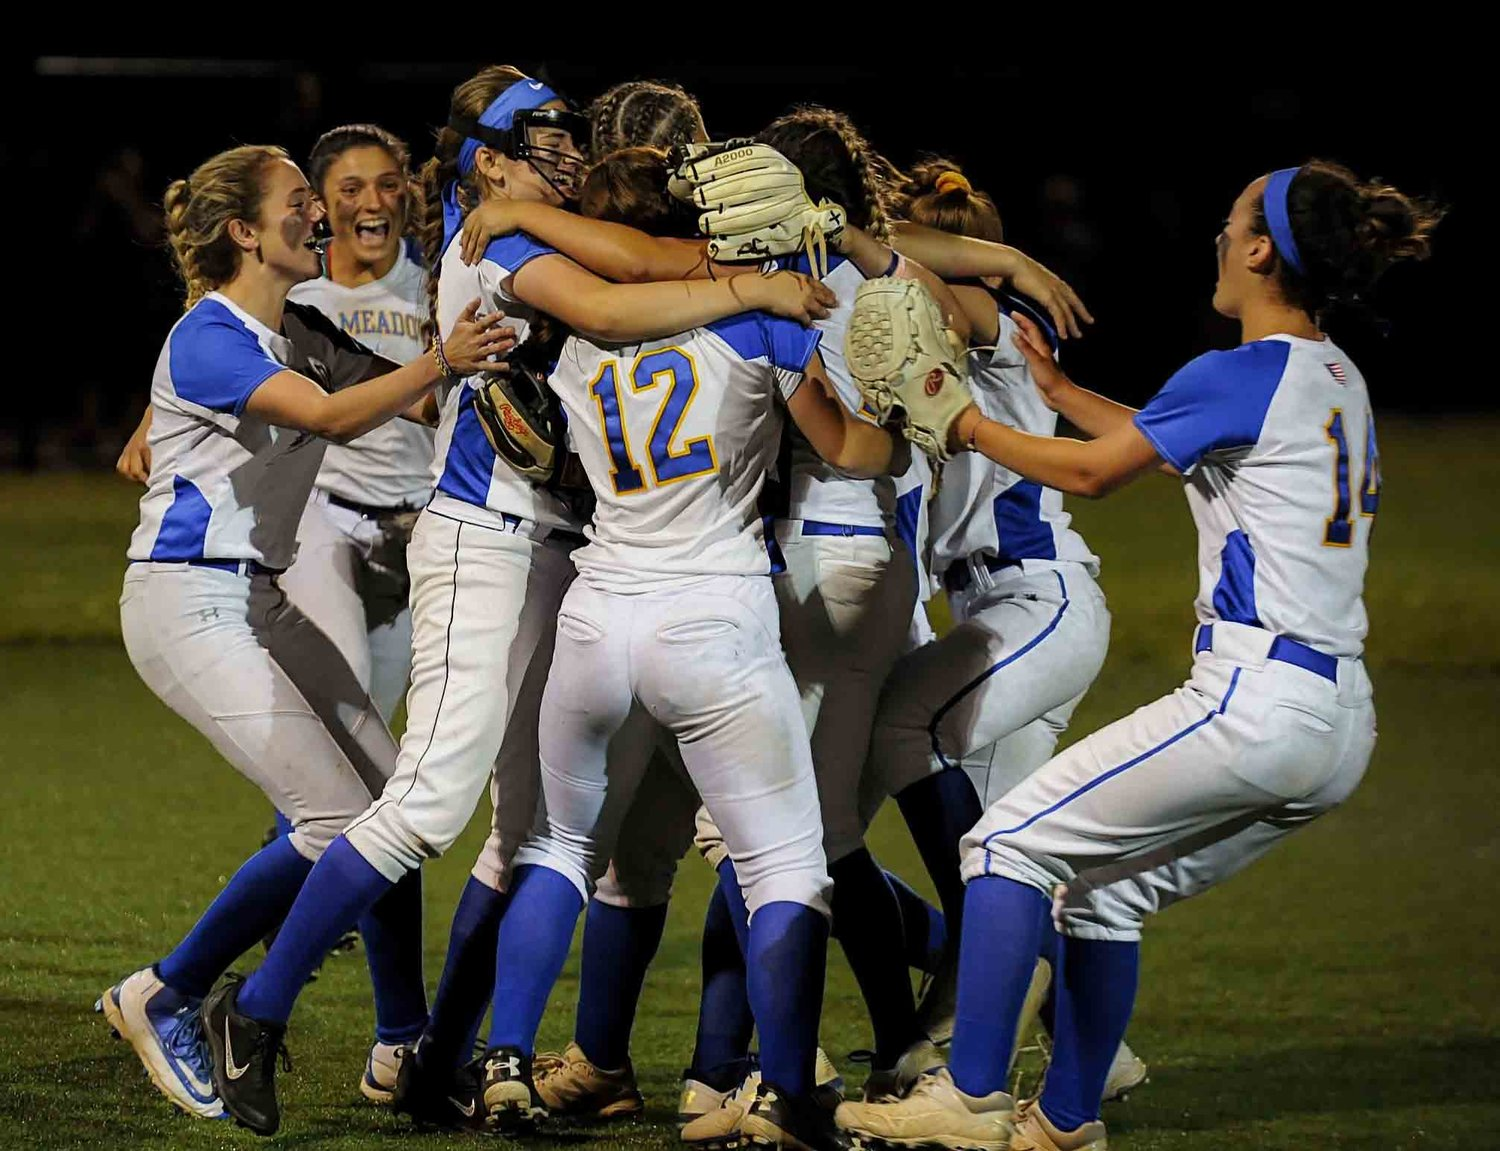 East Meadow celebrated a third straight Long Island Class AA championship on Friday night after cruising past Commack, 10-0.